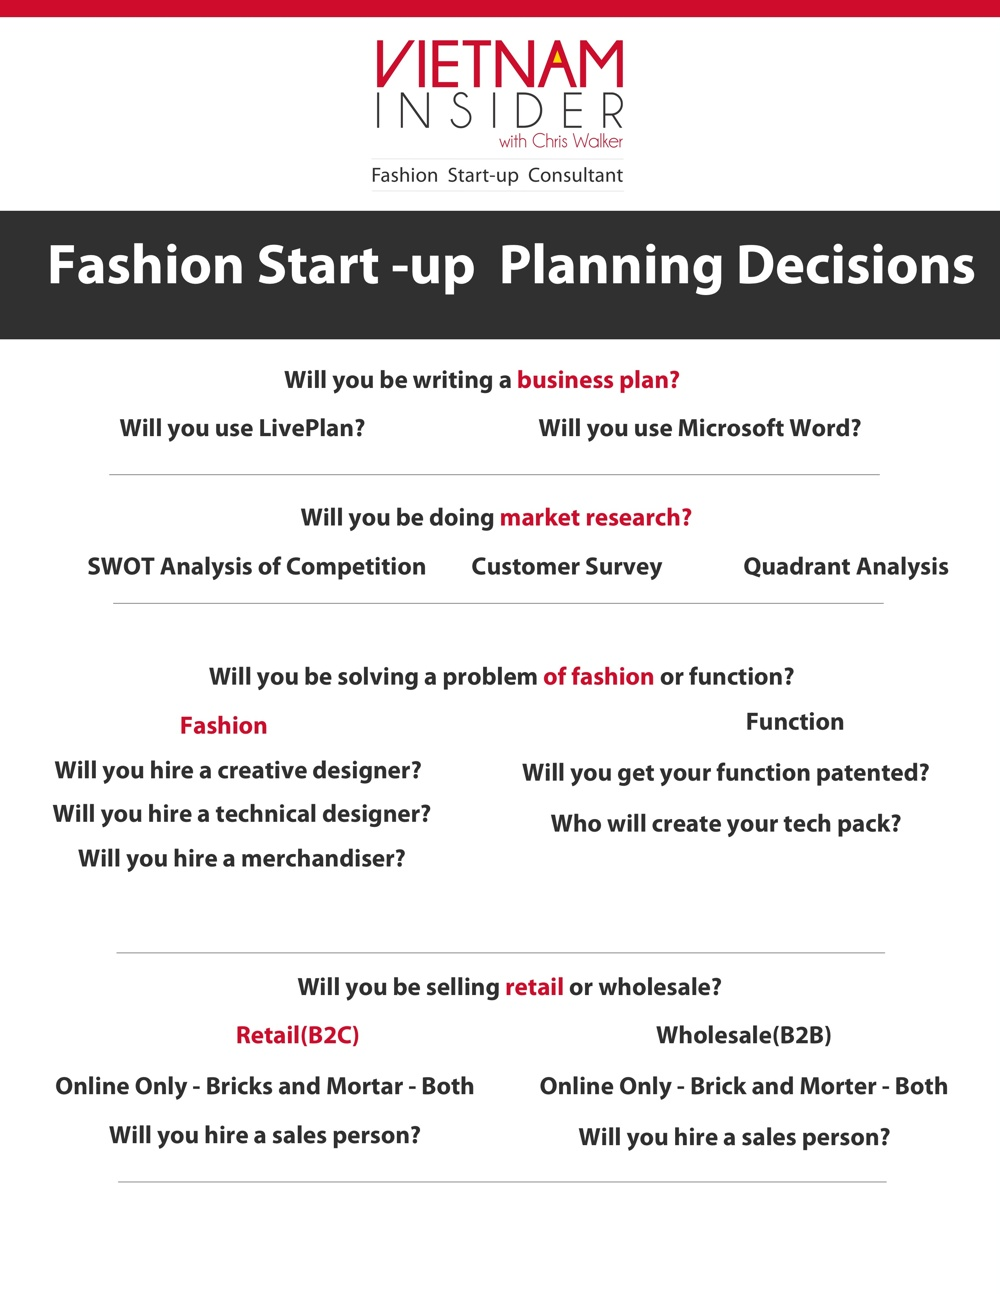 Fashion Start Up Decisions